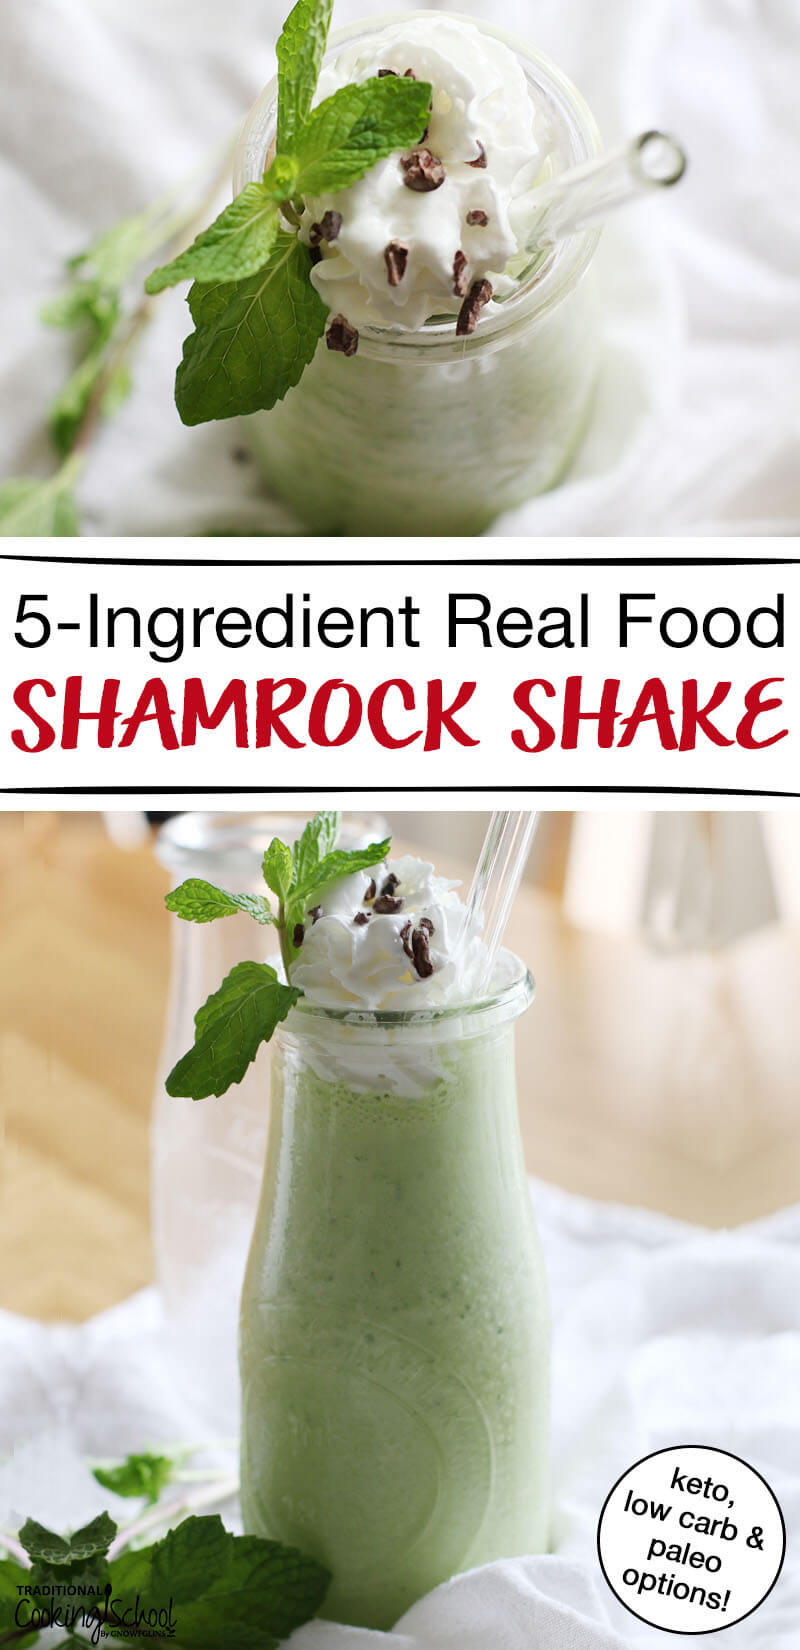 "photo collage of McDonald's inspired Shamrock Shake garnished with whipped cream, cacao nibs, and mint, with text overlay: ""5-Ingredient Real Food Shamrock Shake (Keto, Low Carb, & Paleo options!)"""